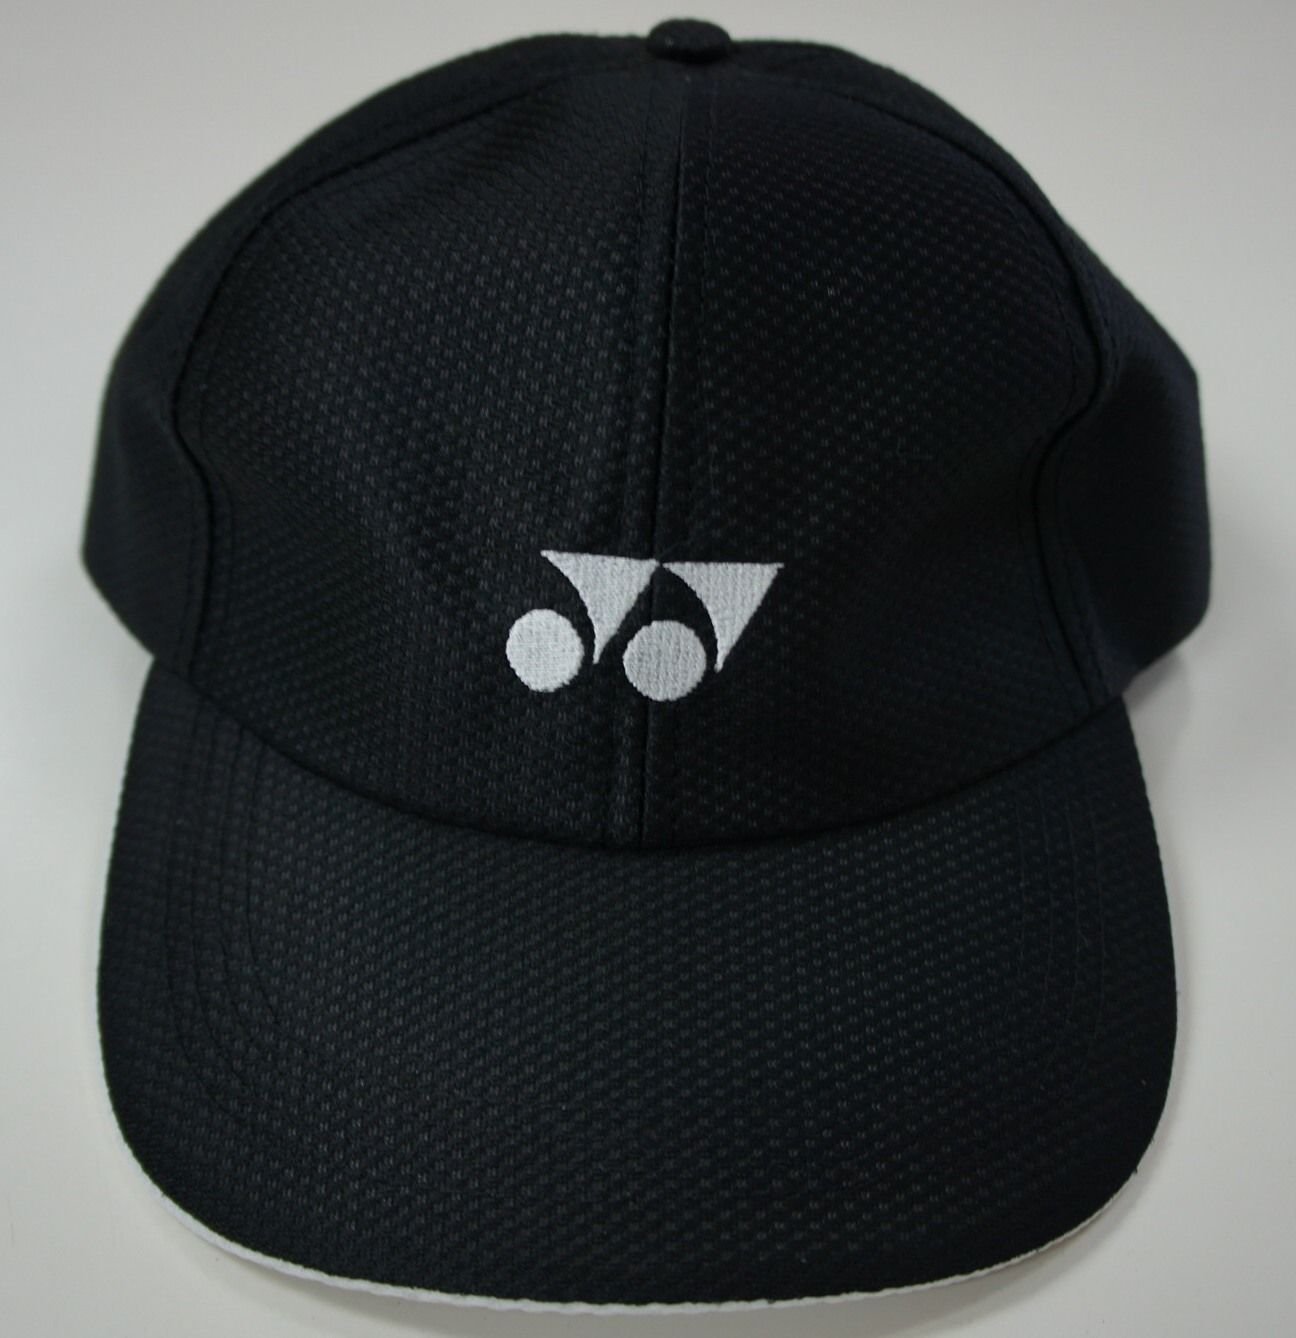 YONEX Tennis/Badminton Cap/Hat W-341, One Size fits All, White or Black